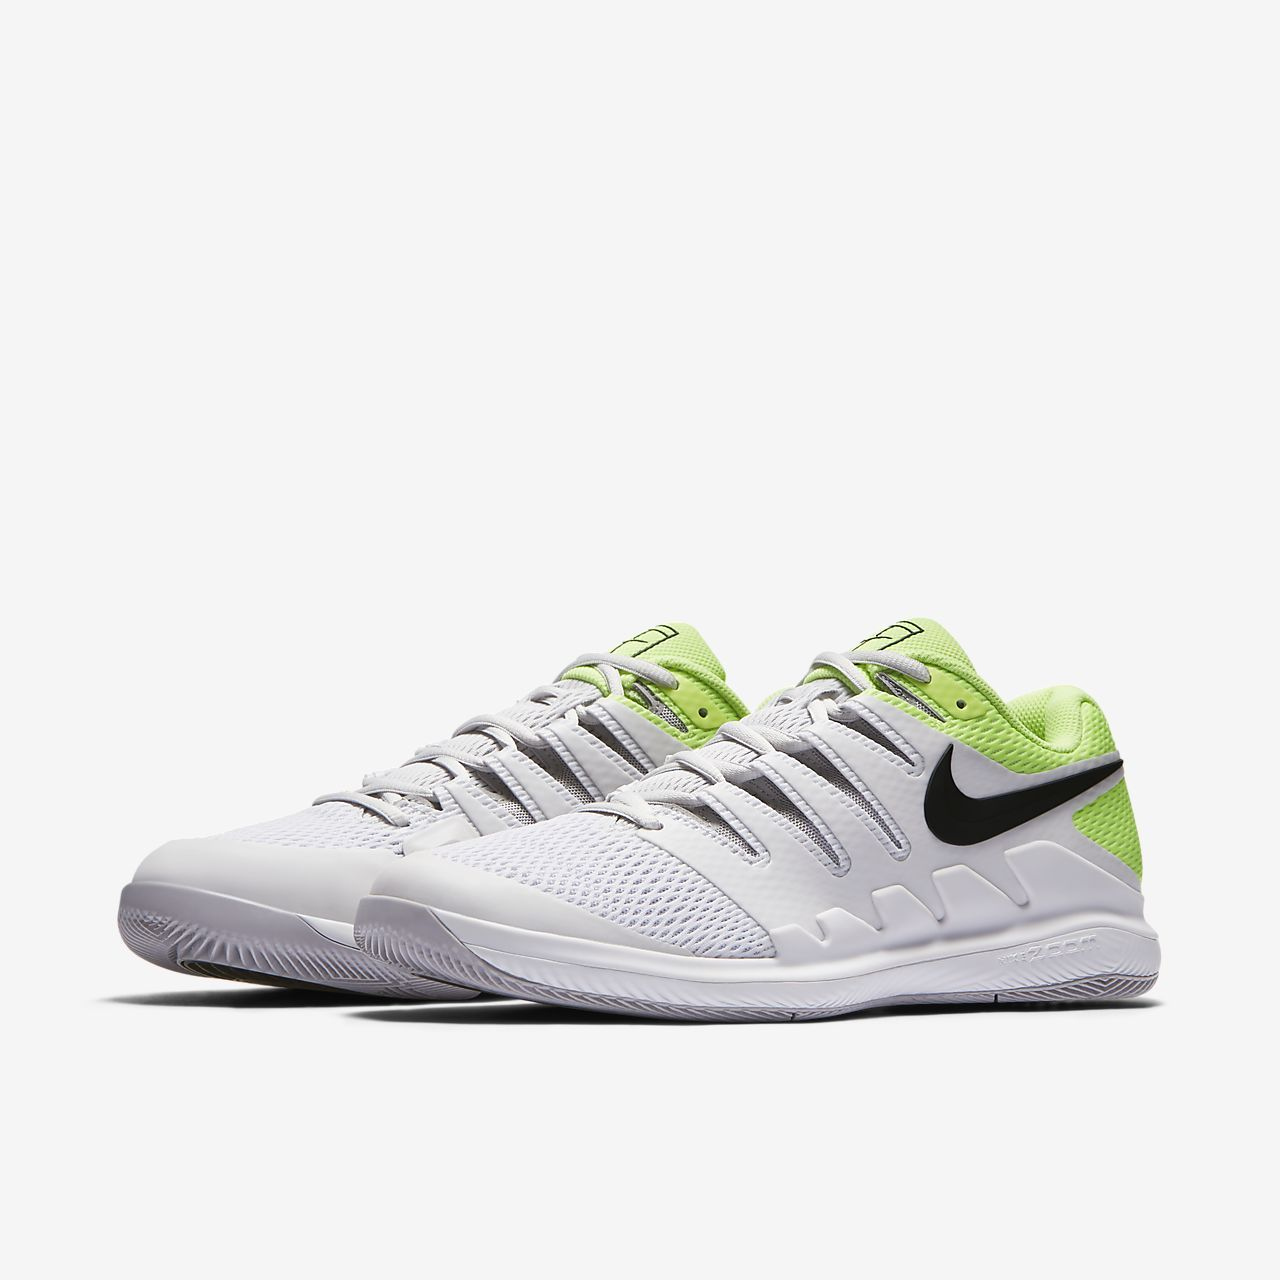 Nikecourt Air Zoom Vapor X Sneakers Air Zoom Shoes